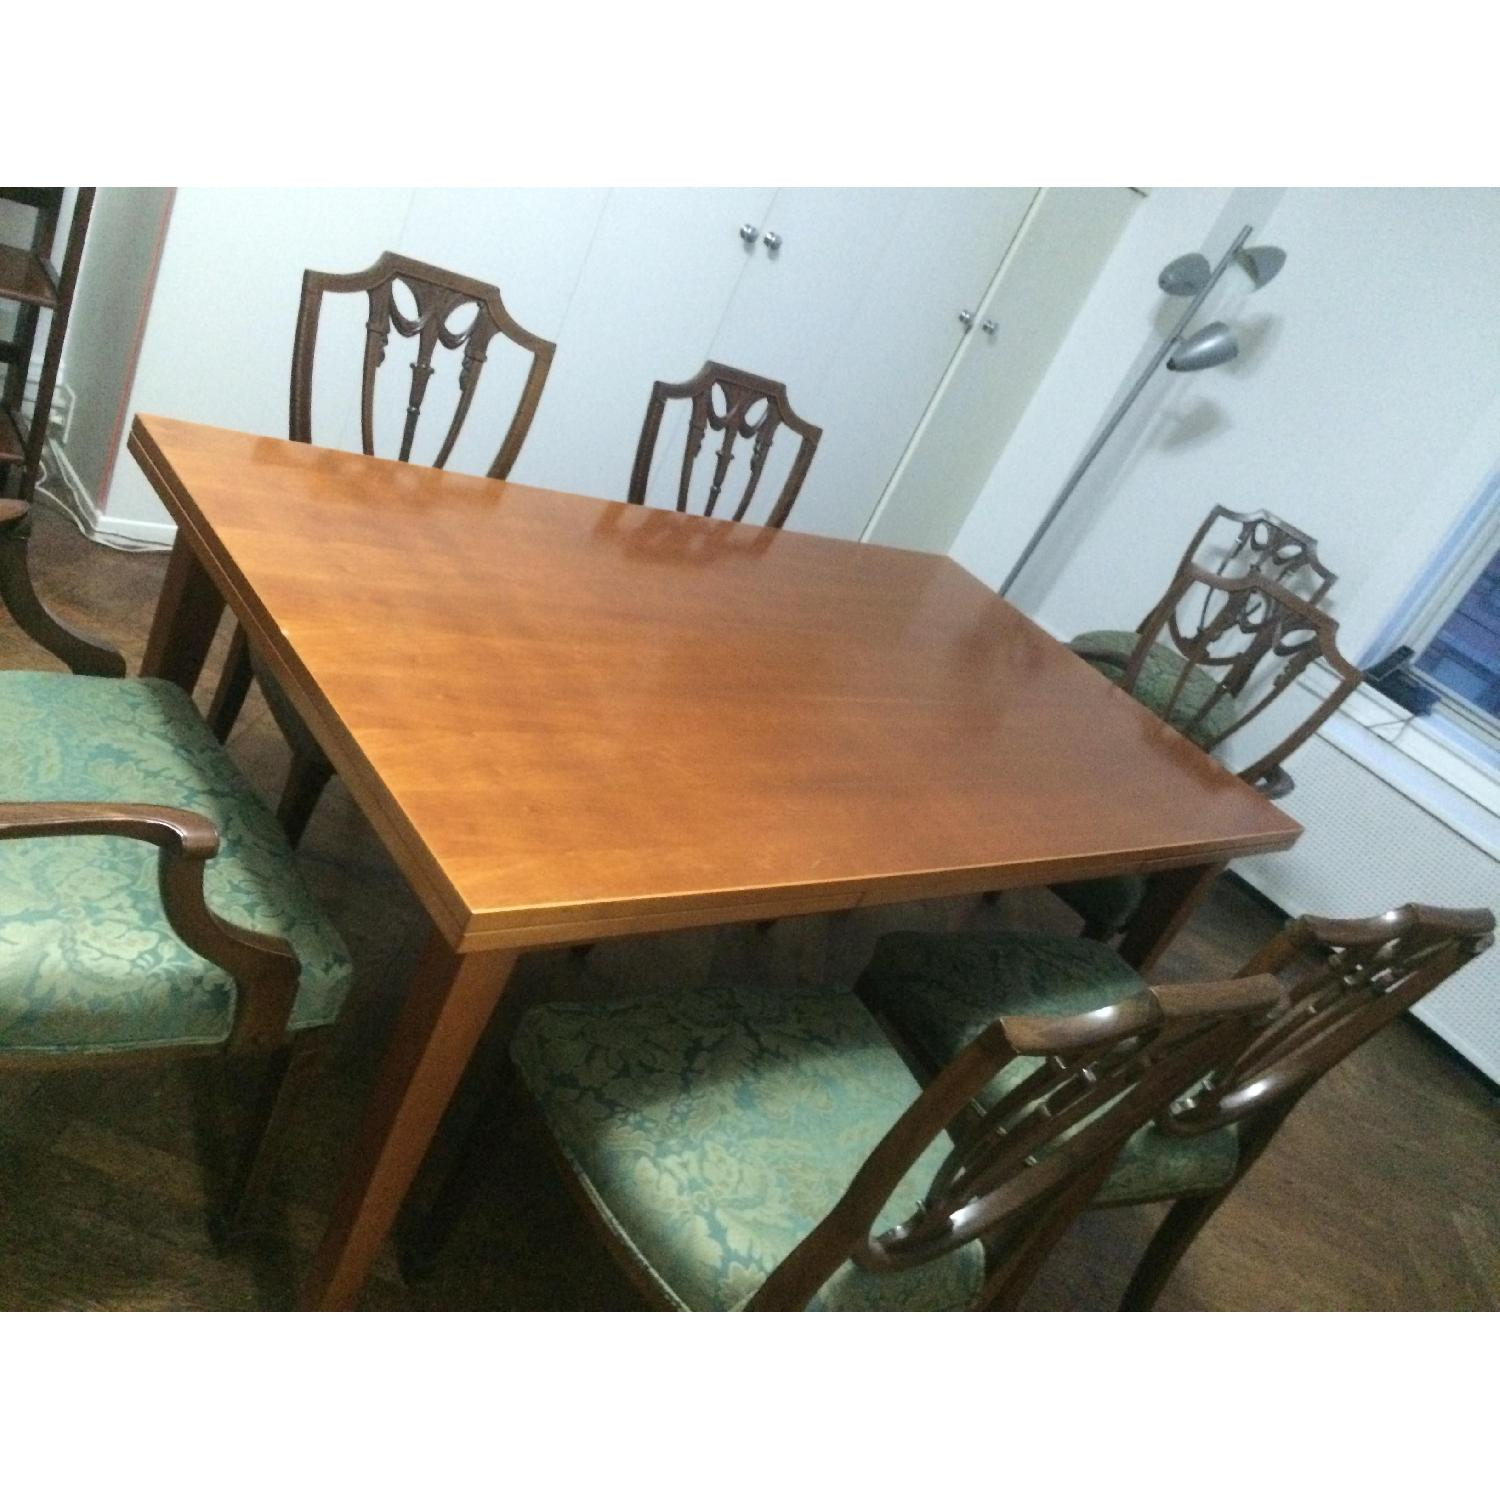 Fruit Wood Draw-Leaf Extension Table - image-3